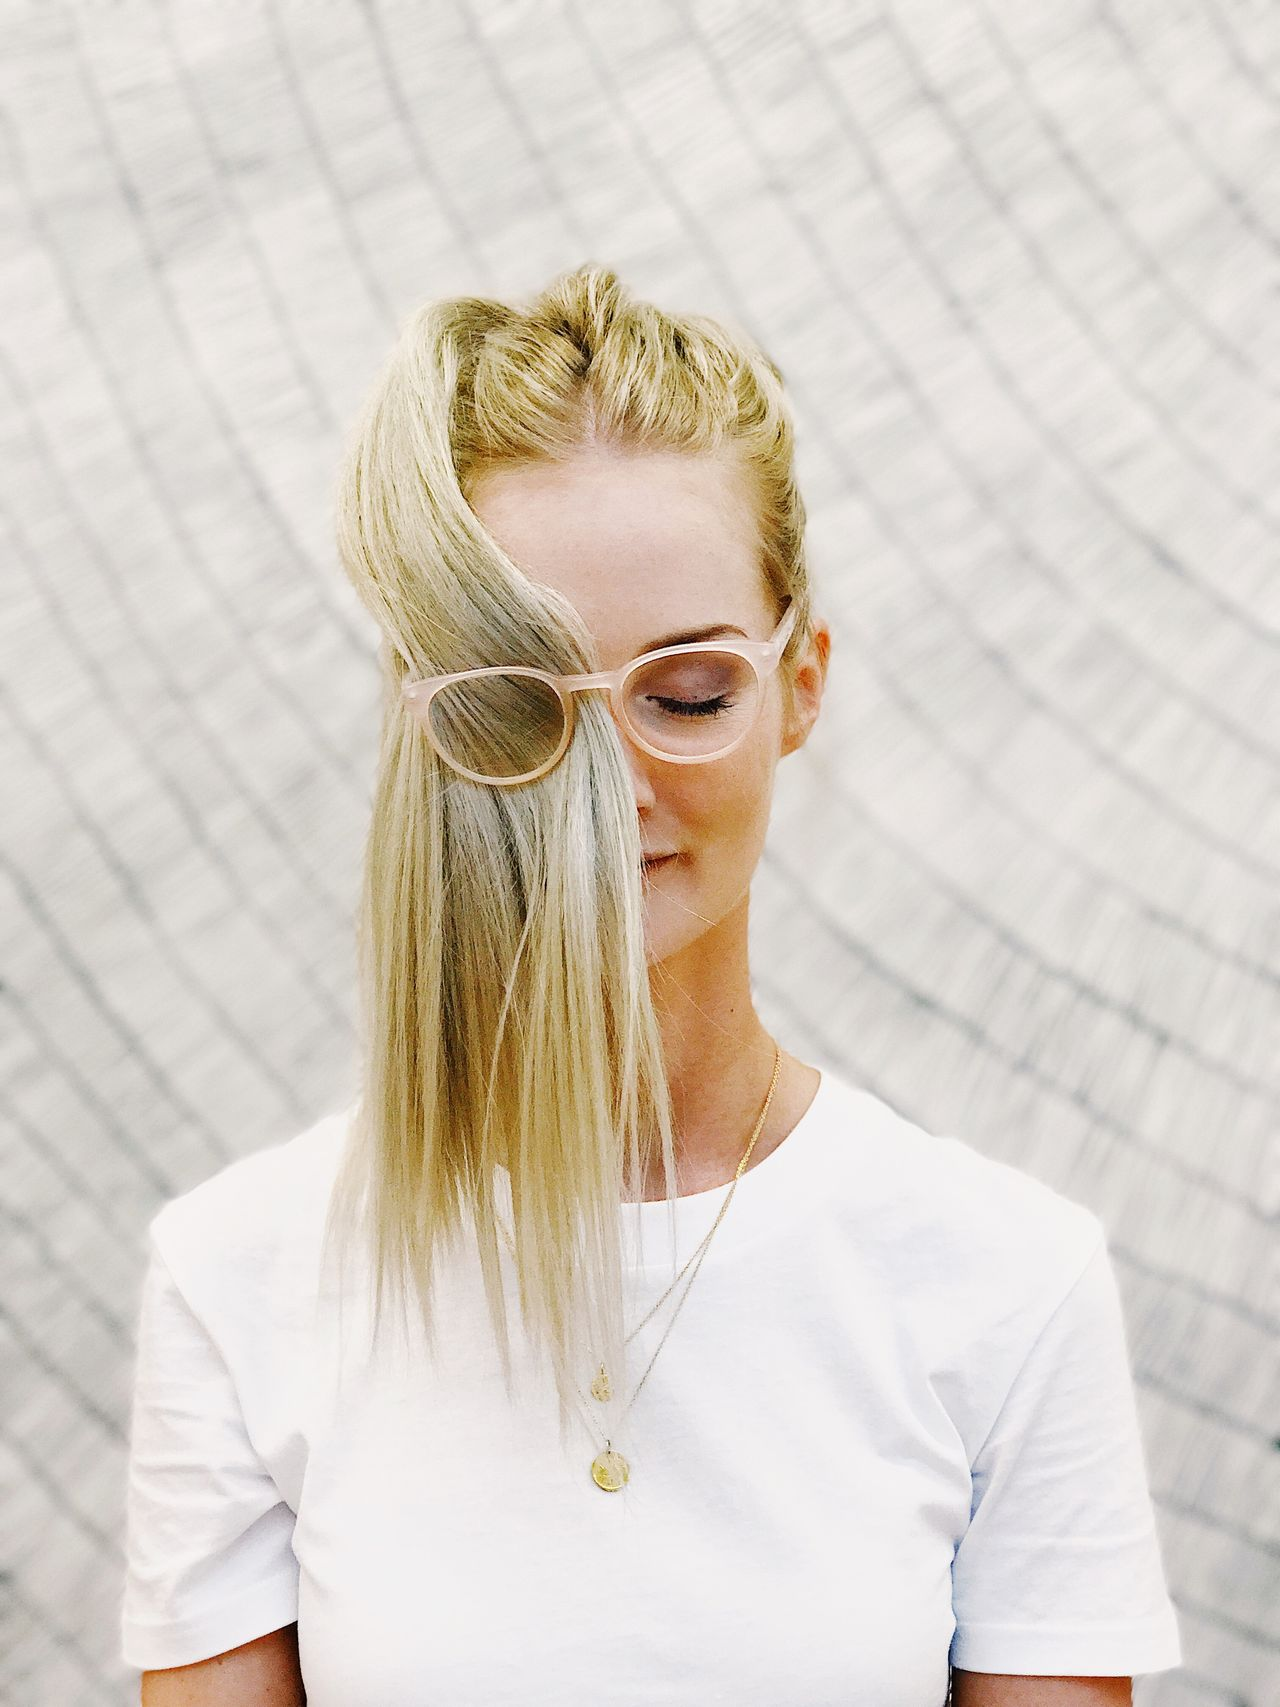 EyeEm Selects blond hair one person sunglasses one woman only casual clothing day young adult outdoors eyeglasses women only women headshot beautiful woman Adults Only portrait Adult one young woman only young women people close-up